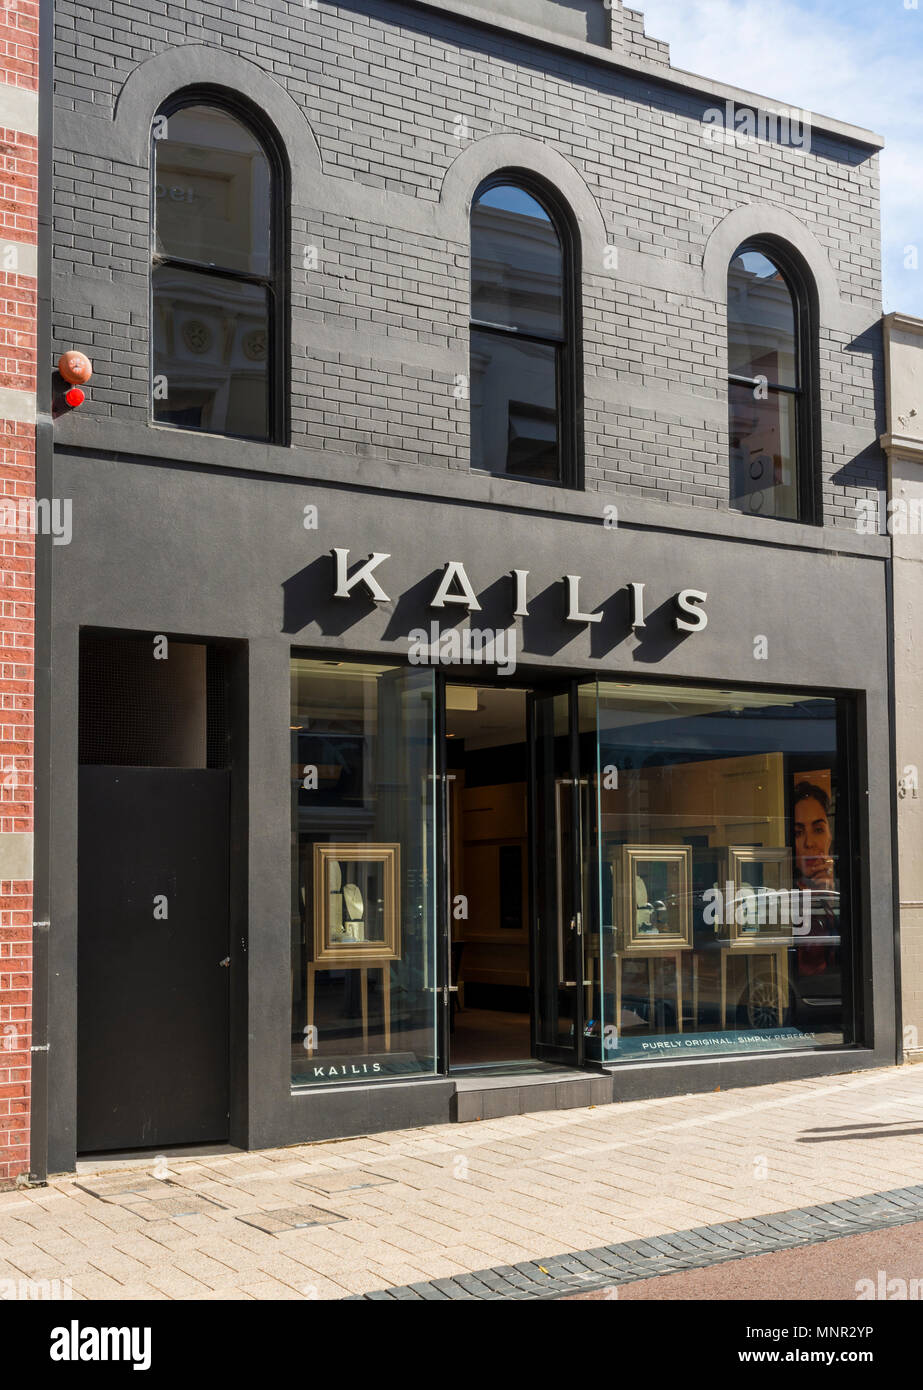 Kailis Boutique, a specialty pearl jewellery shop in the high end shopping precinct of Kings Street, Perth, Western Australia, Australia Stock Photo